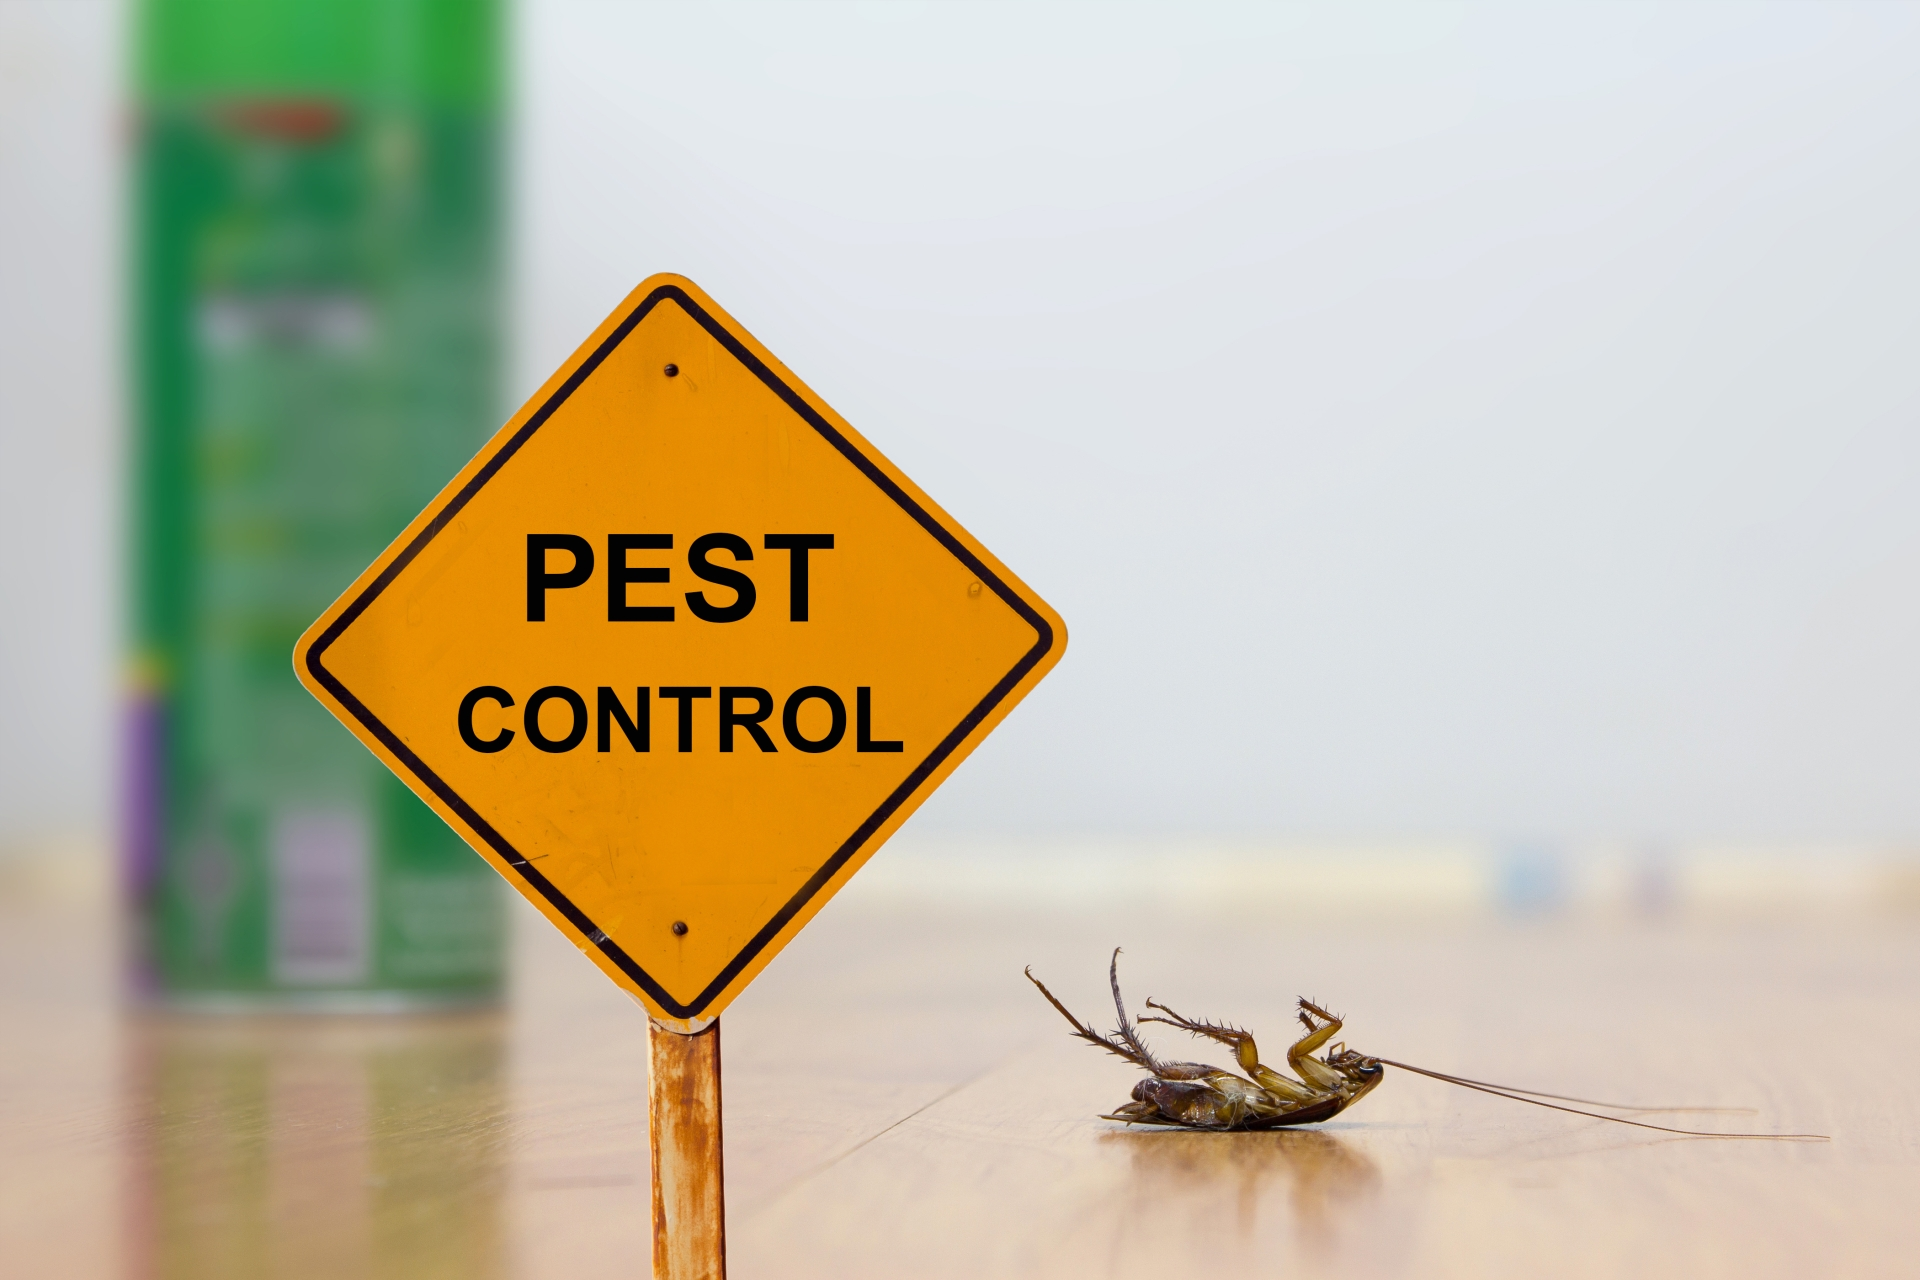 24 Hour Pest Control, Pest Control in Notting Hill, W11. Call Now 020 8166 9746